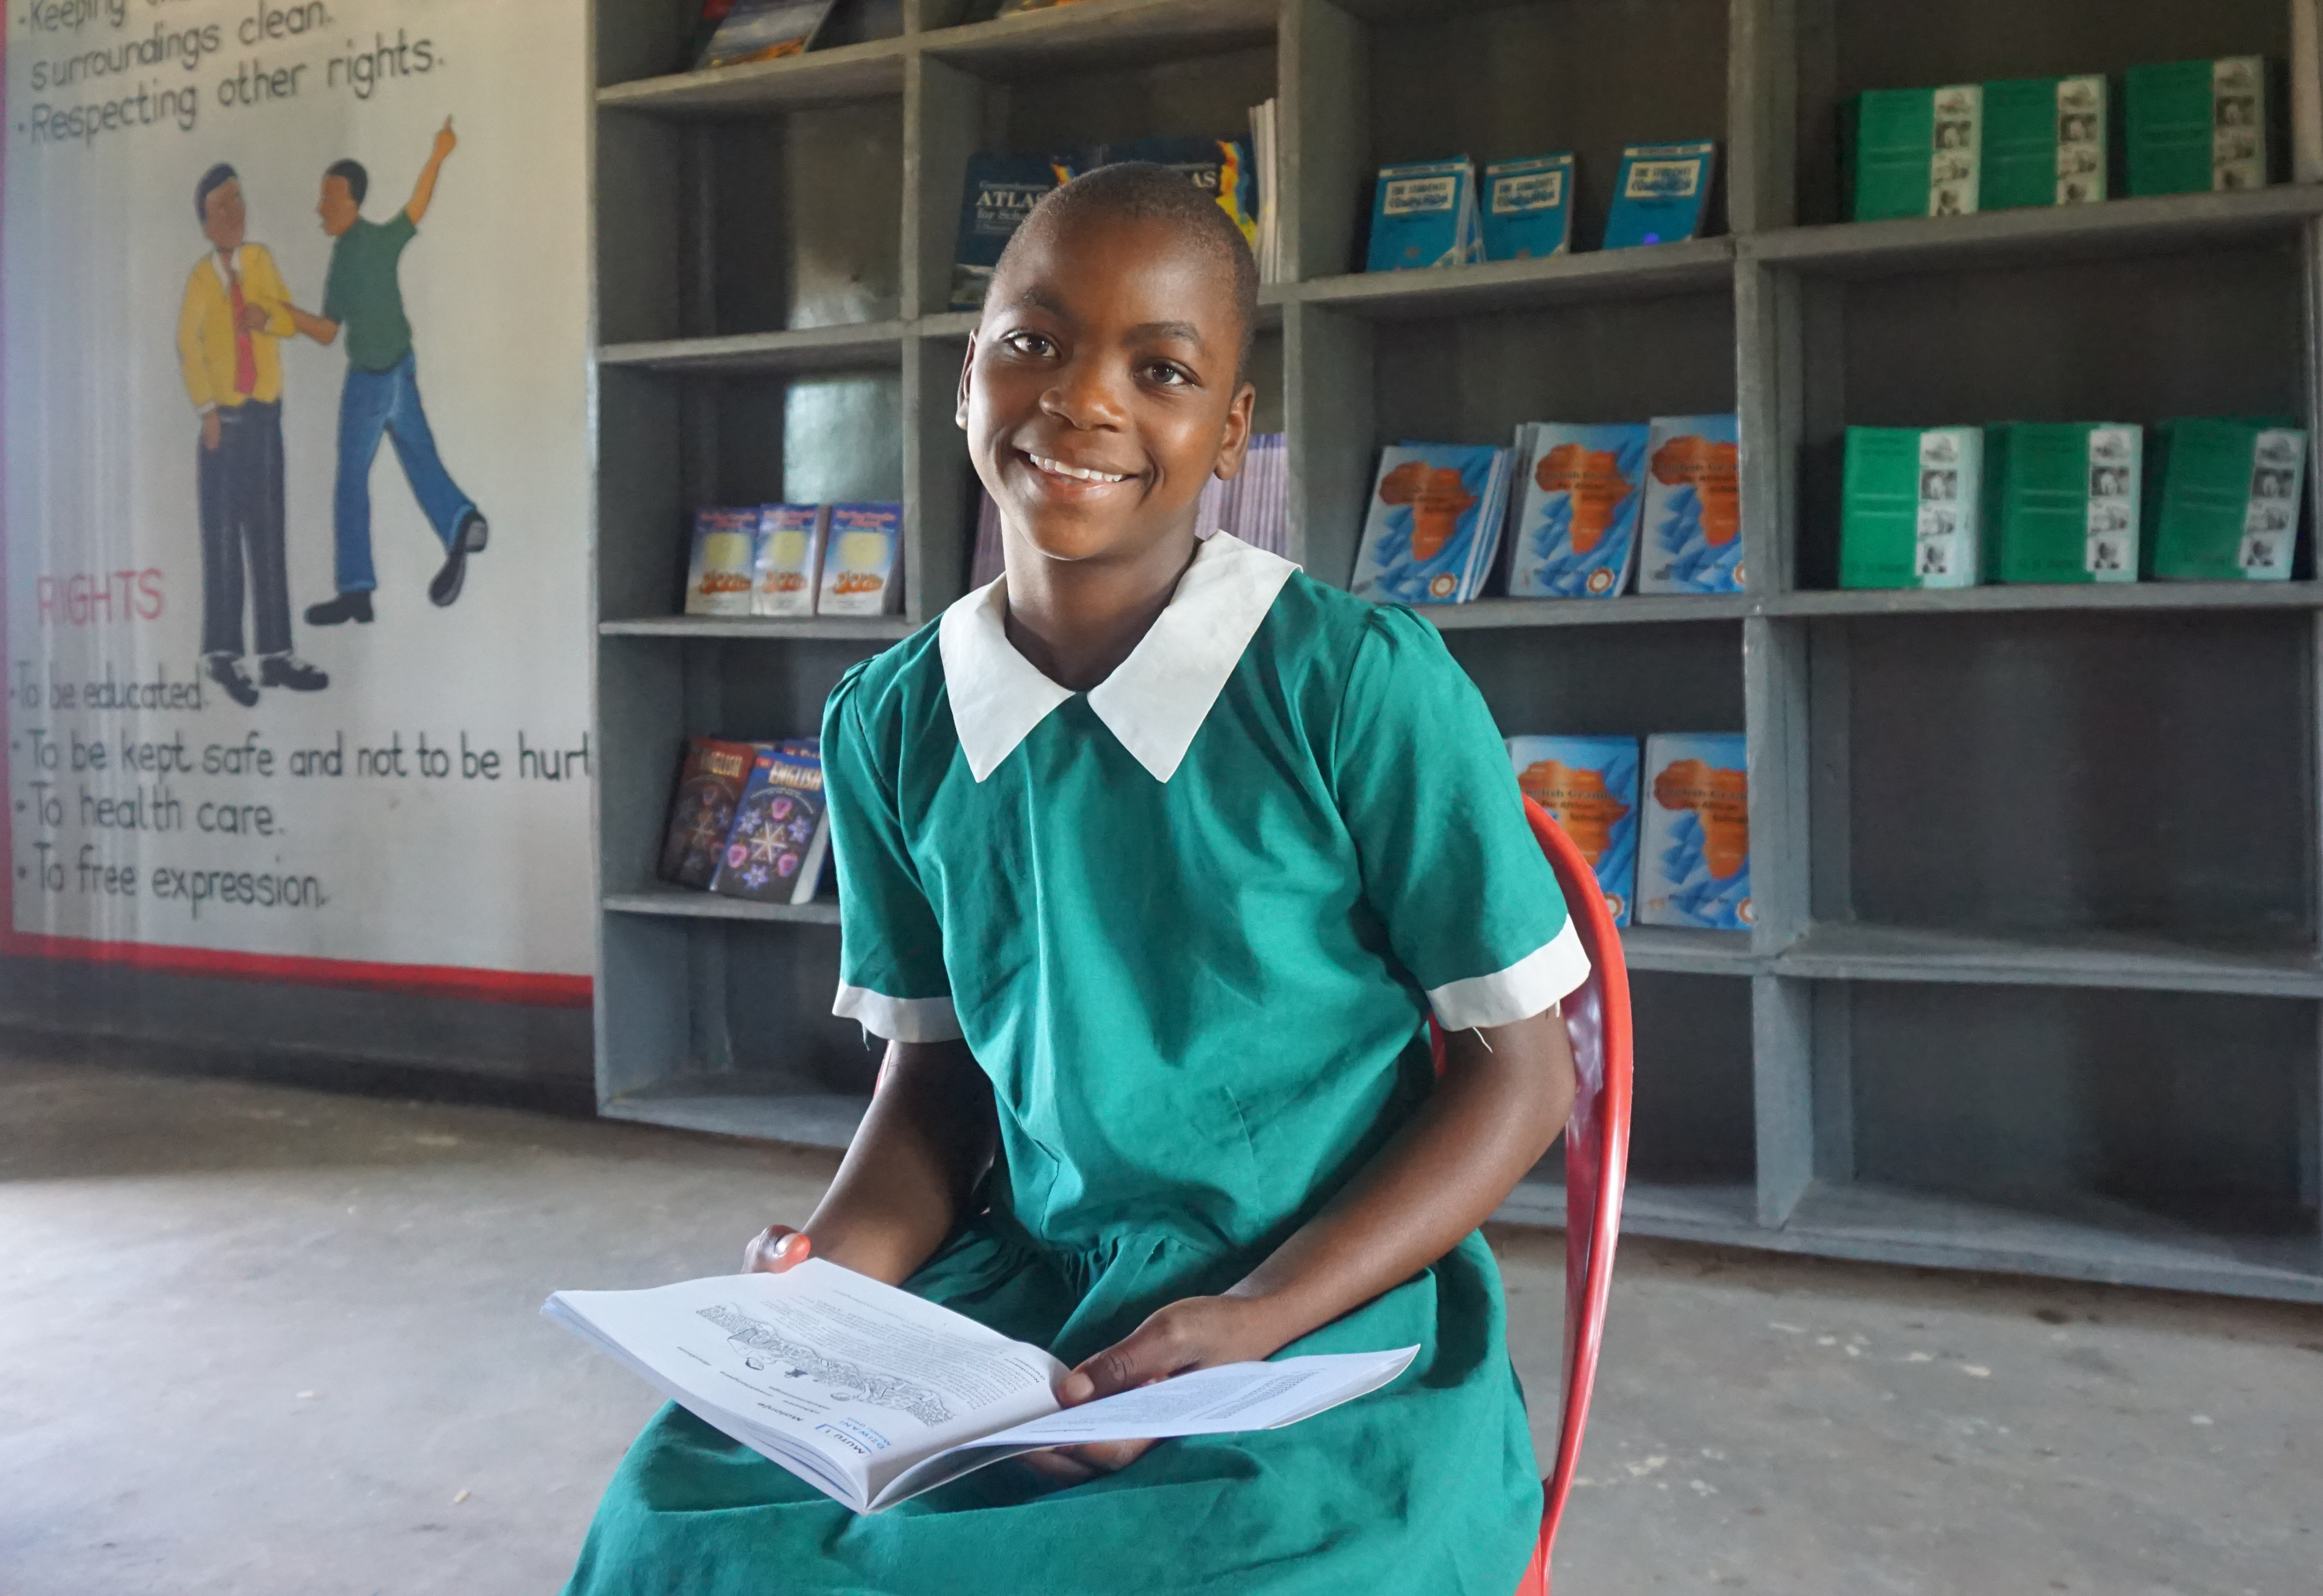 Smiling child from Malawi